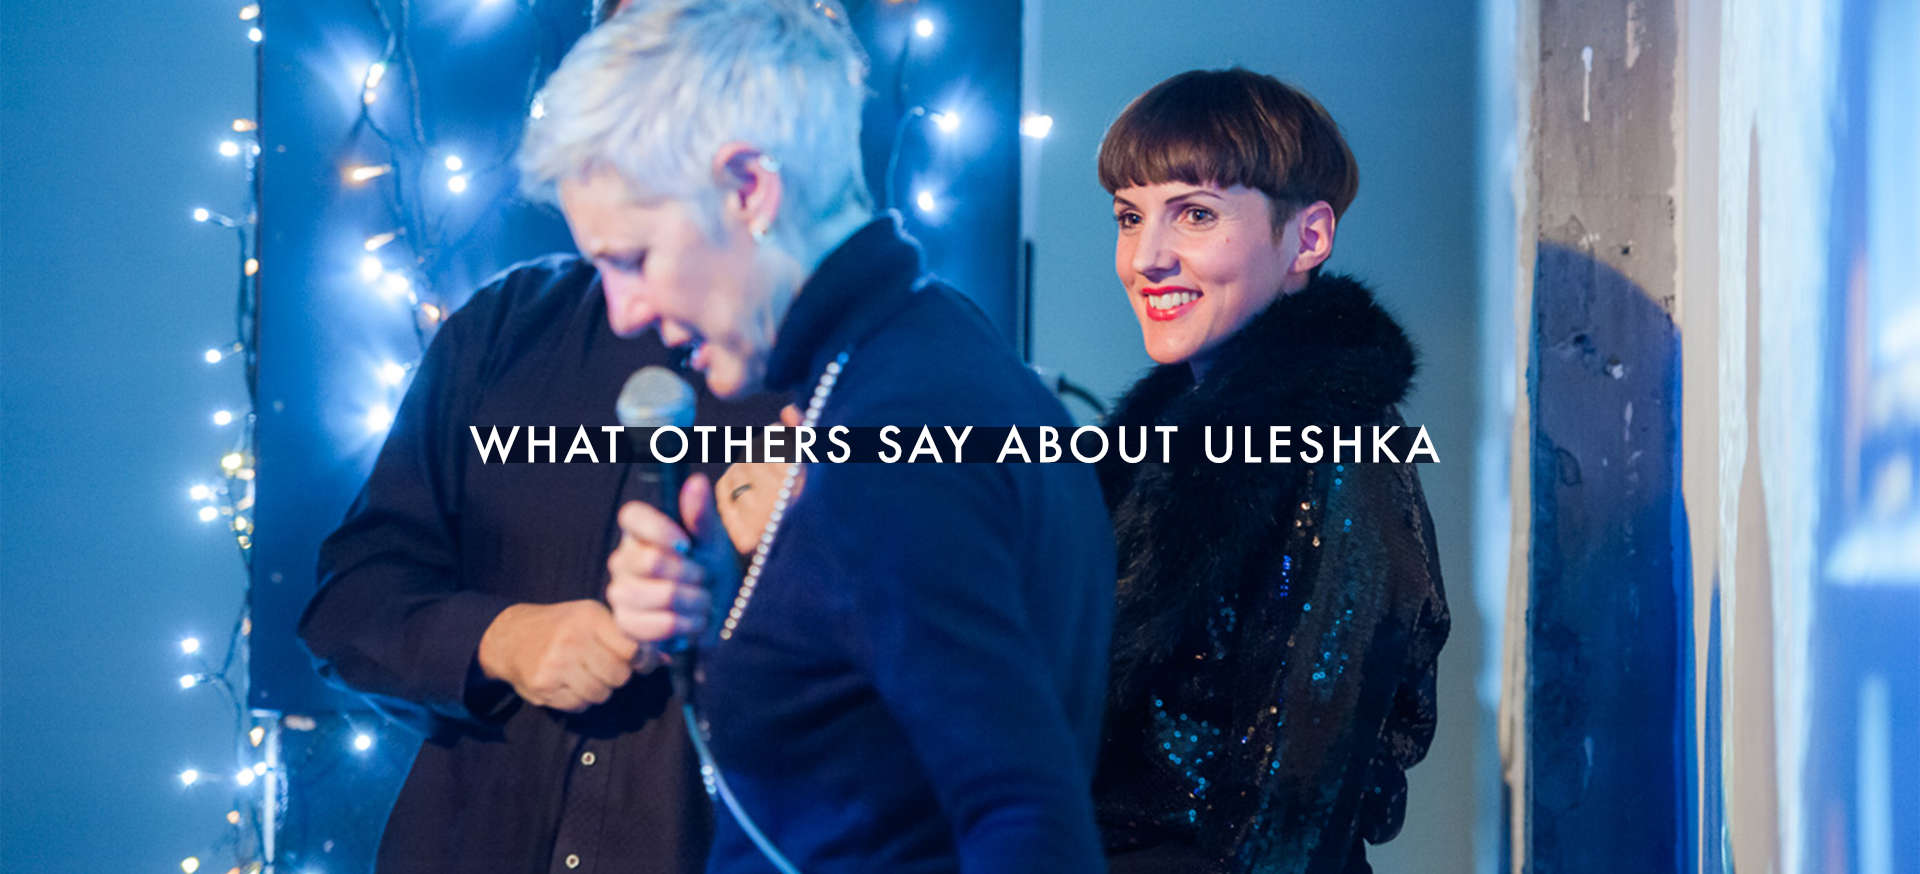 What others say about Uleshka - Testimonials.